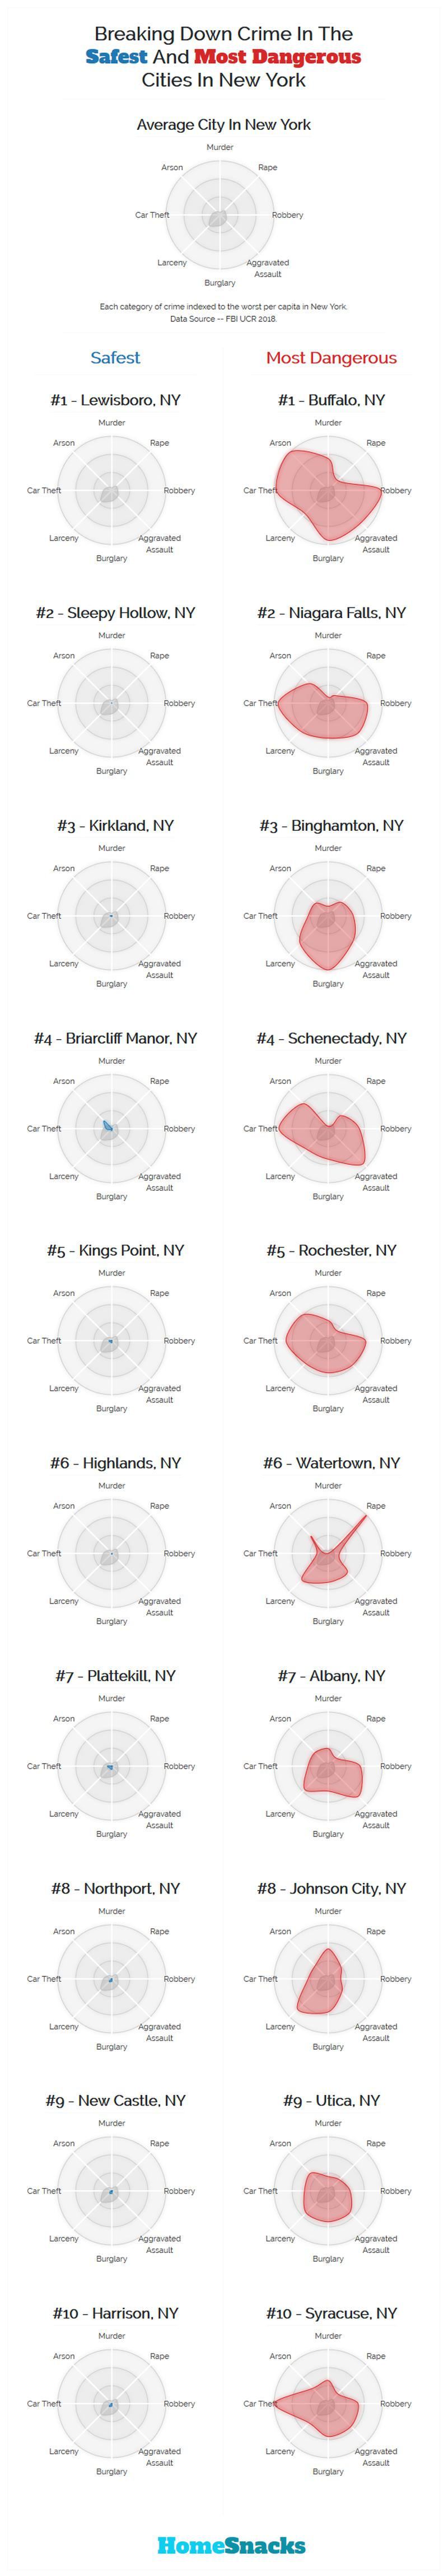 Safest Cities in New York Breakdown